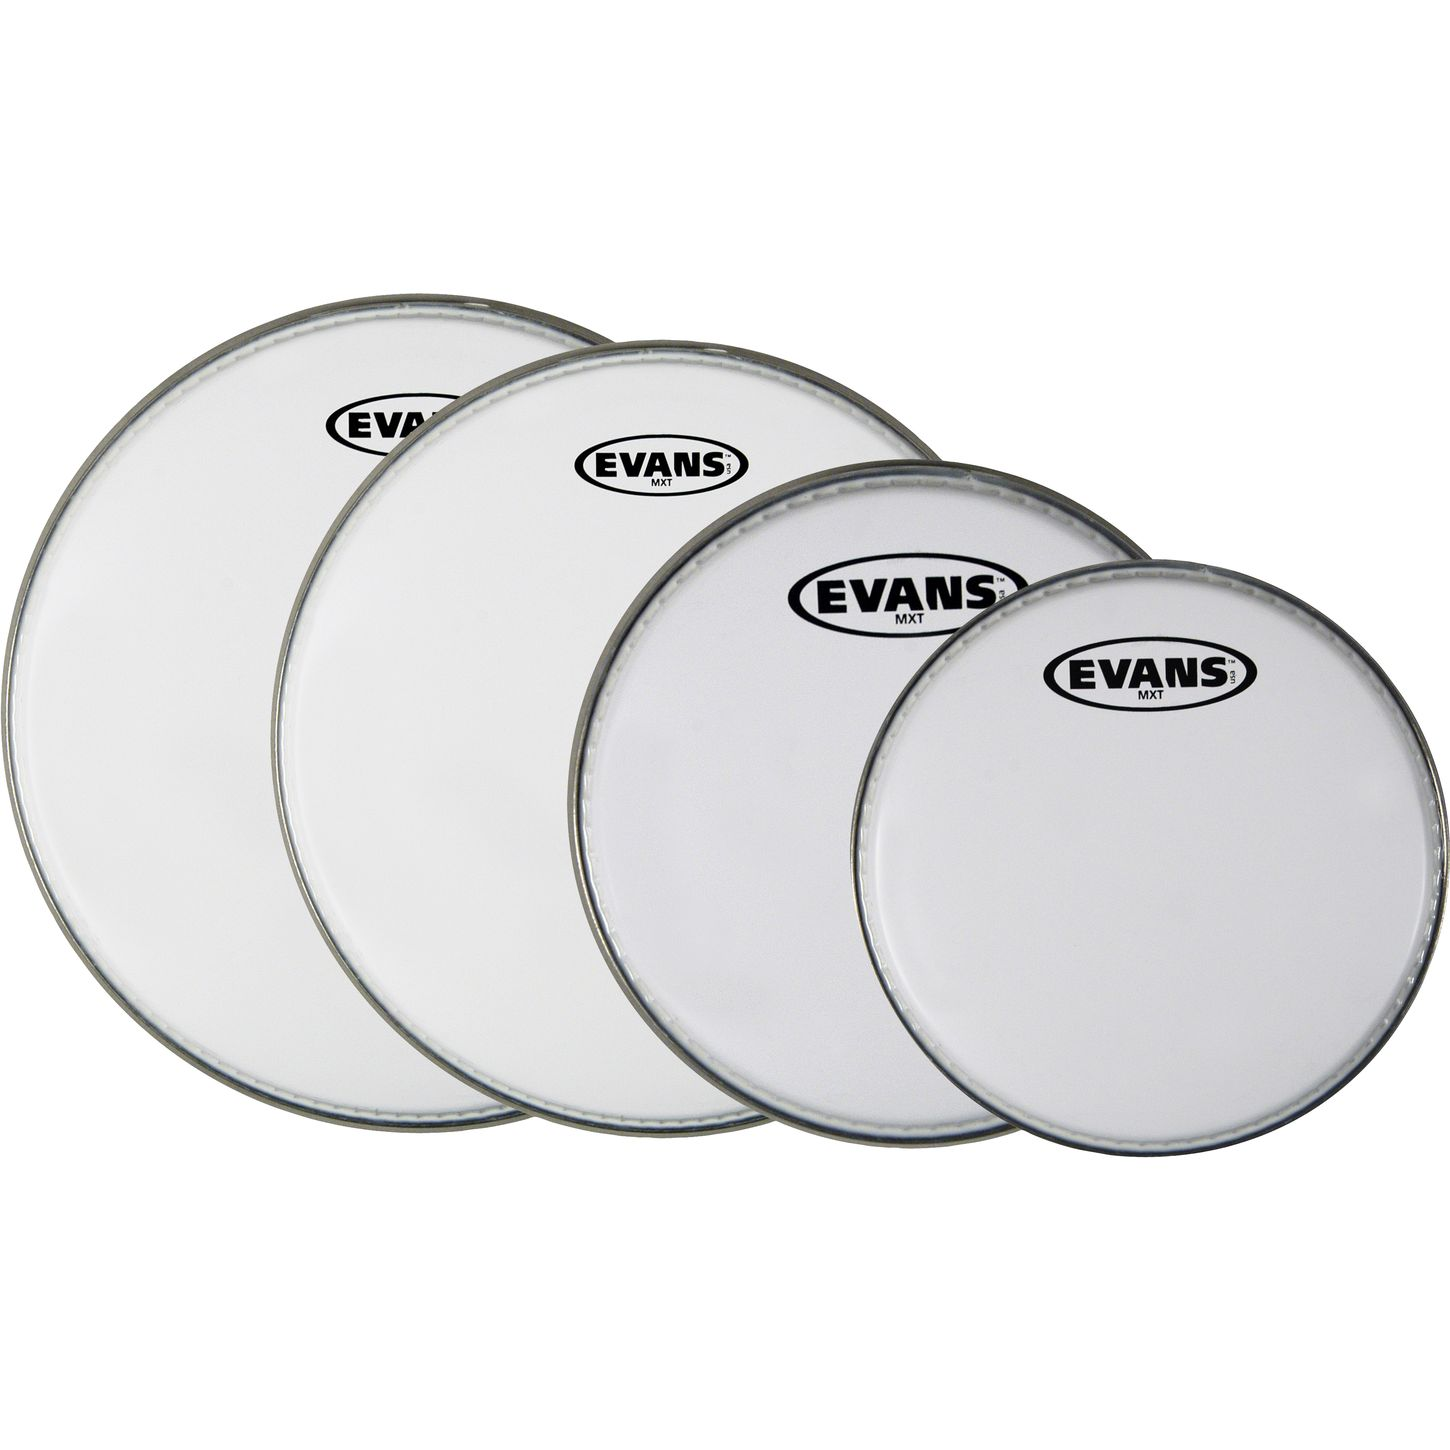 drum heads via sic skinz sic skinz online store. Black Bedroom Furniture Sets. Home Design Ideas